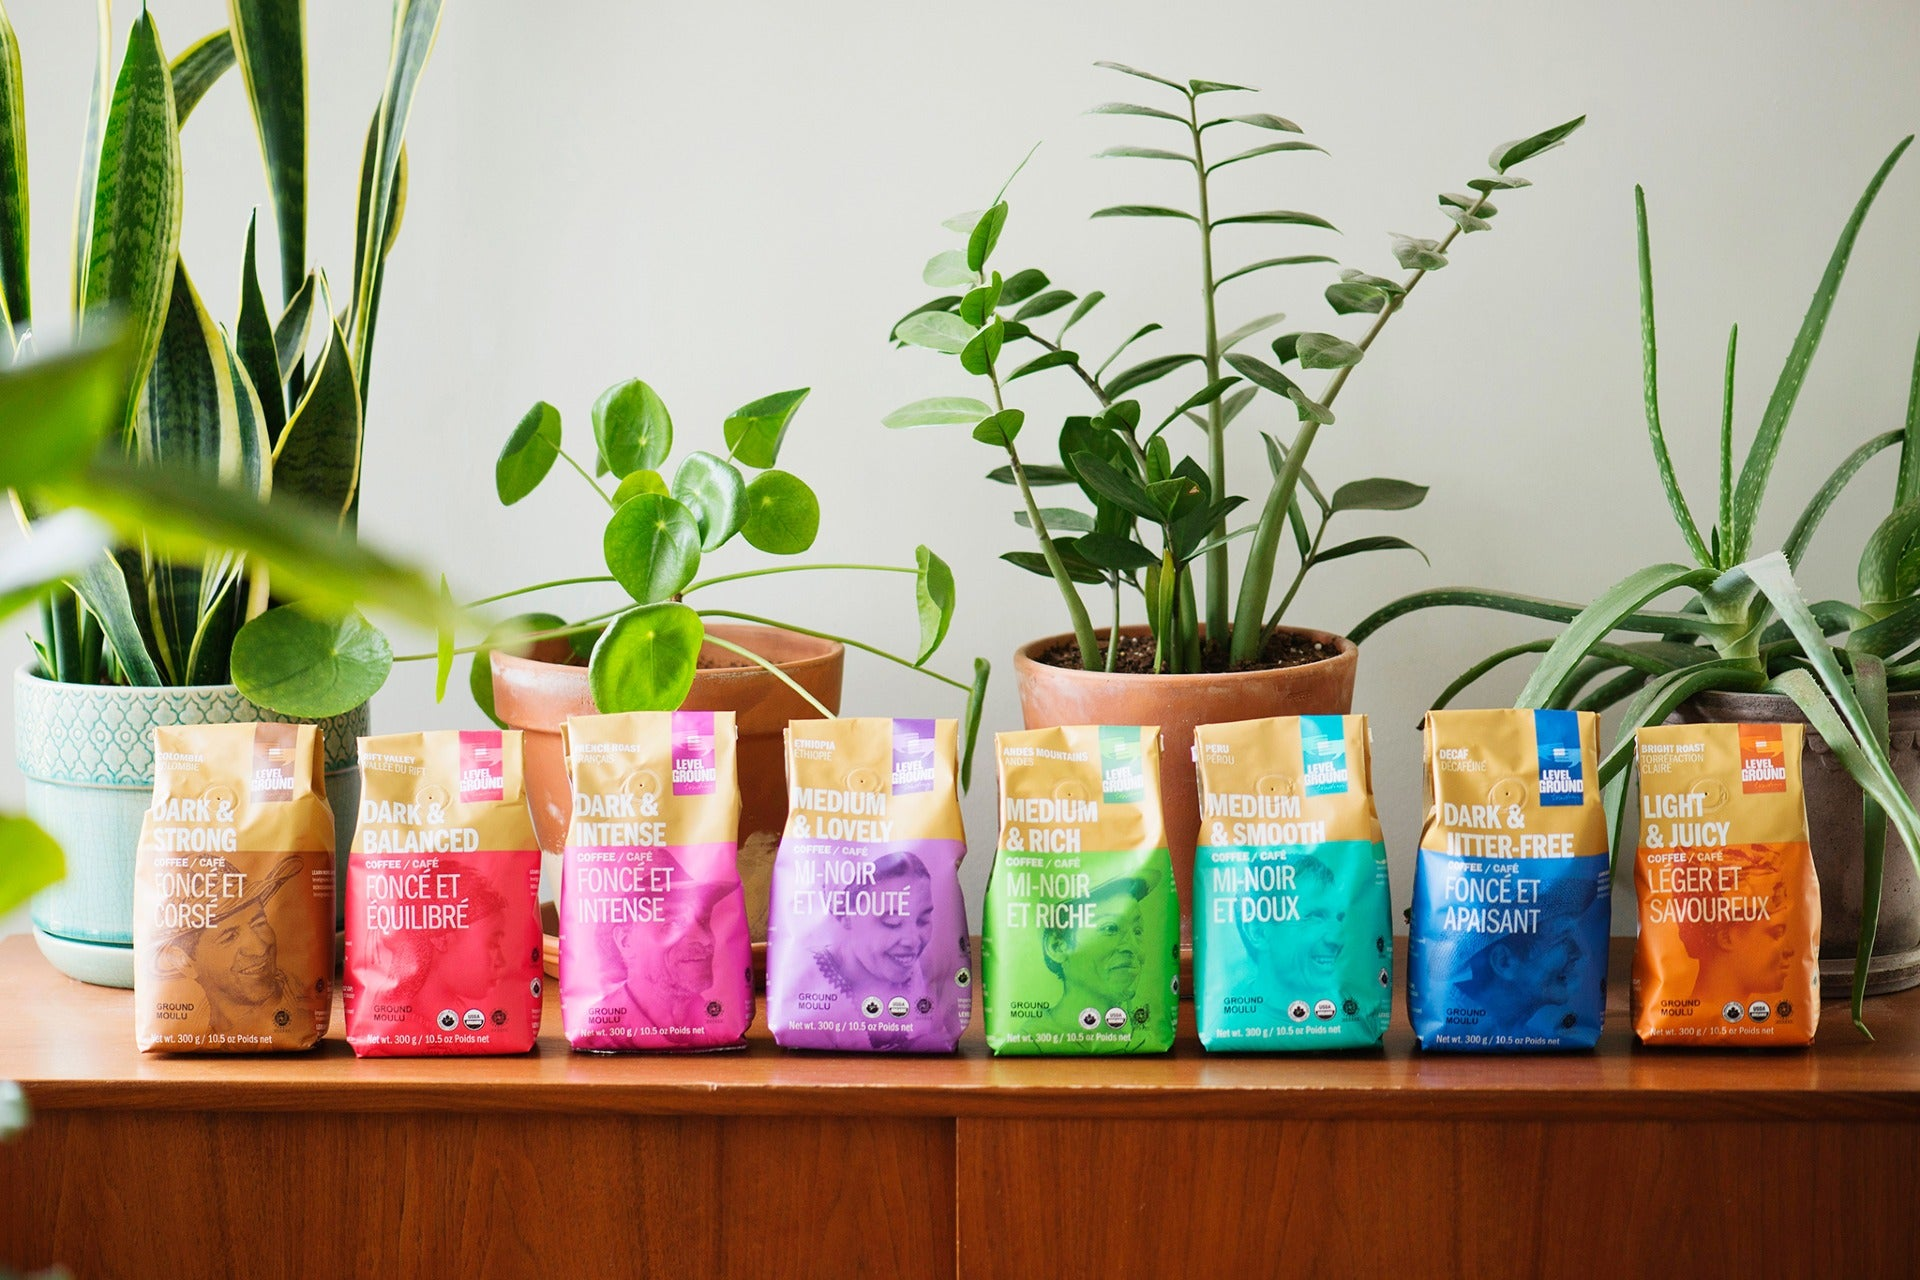 300g coffee packages in row on table, potted plants behind